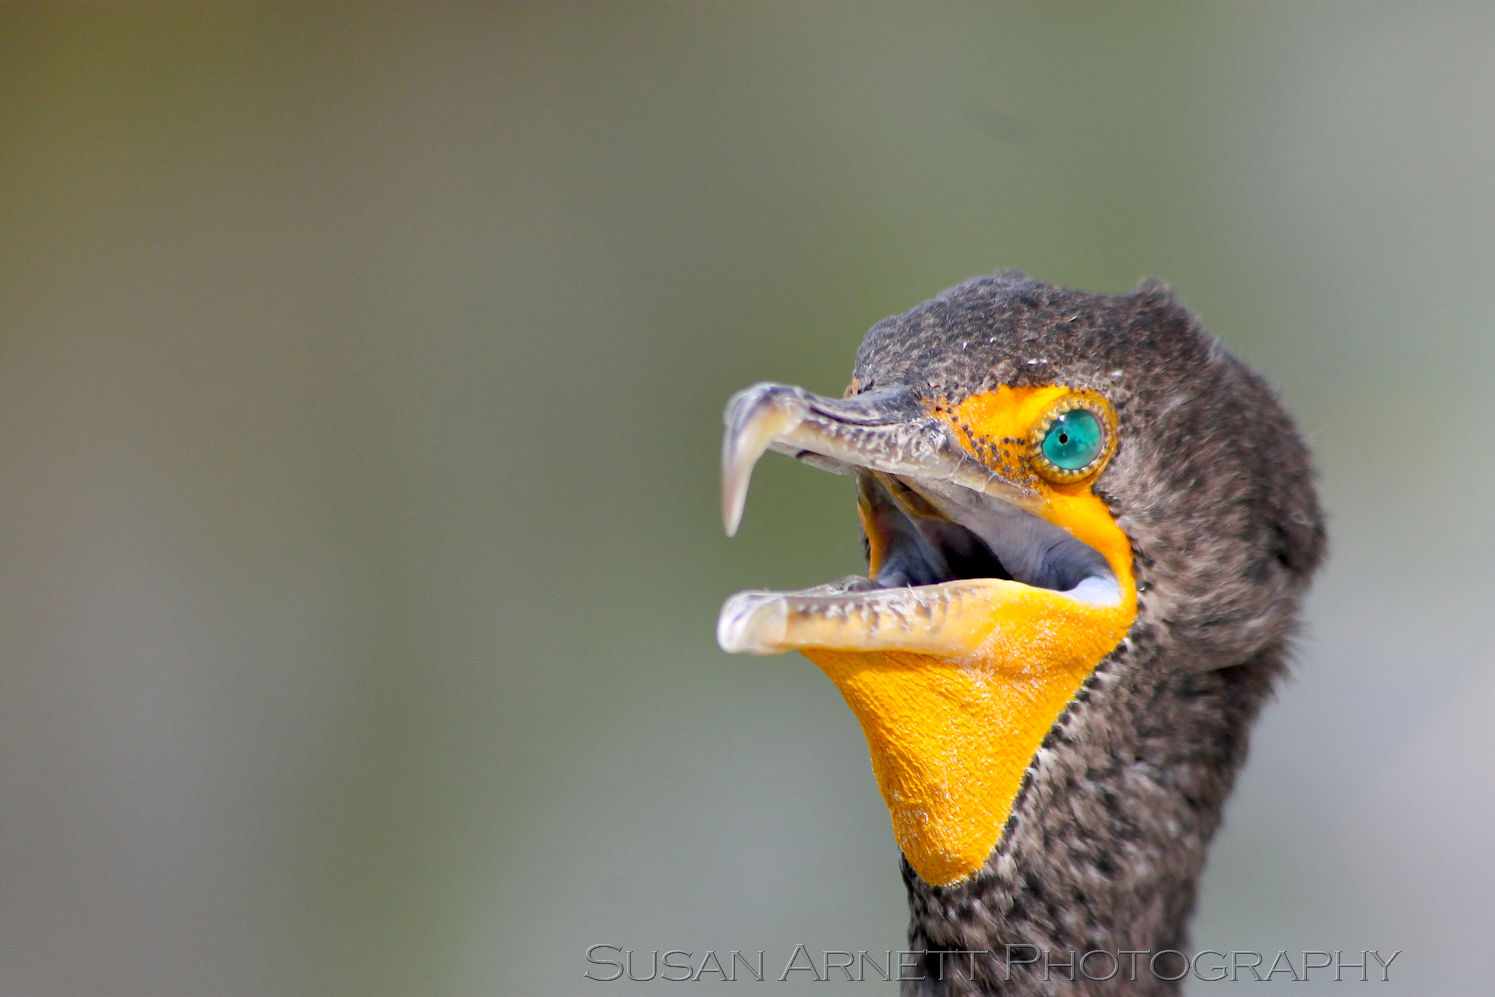 A cormorant rests in the sun in the Florida Everglades, showing of their bright blue eyes and yellow beak.